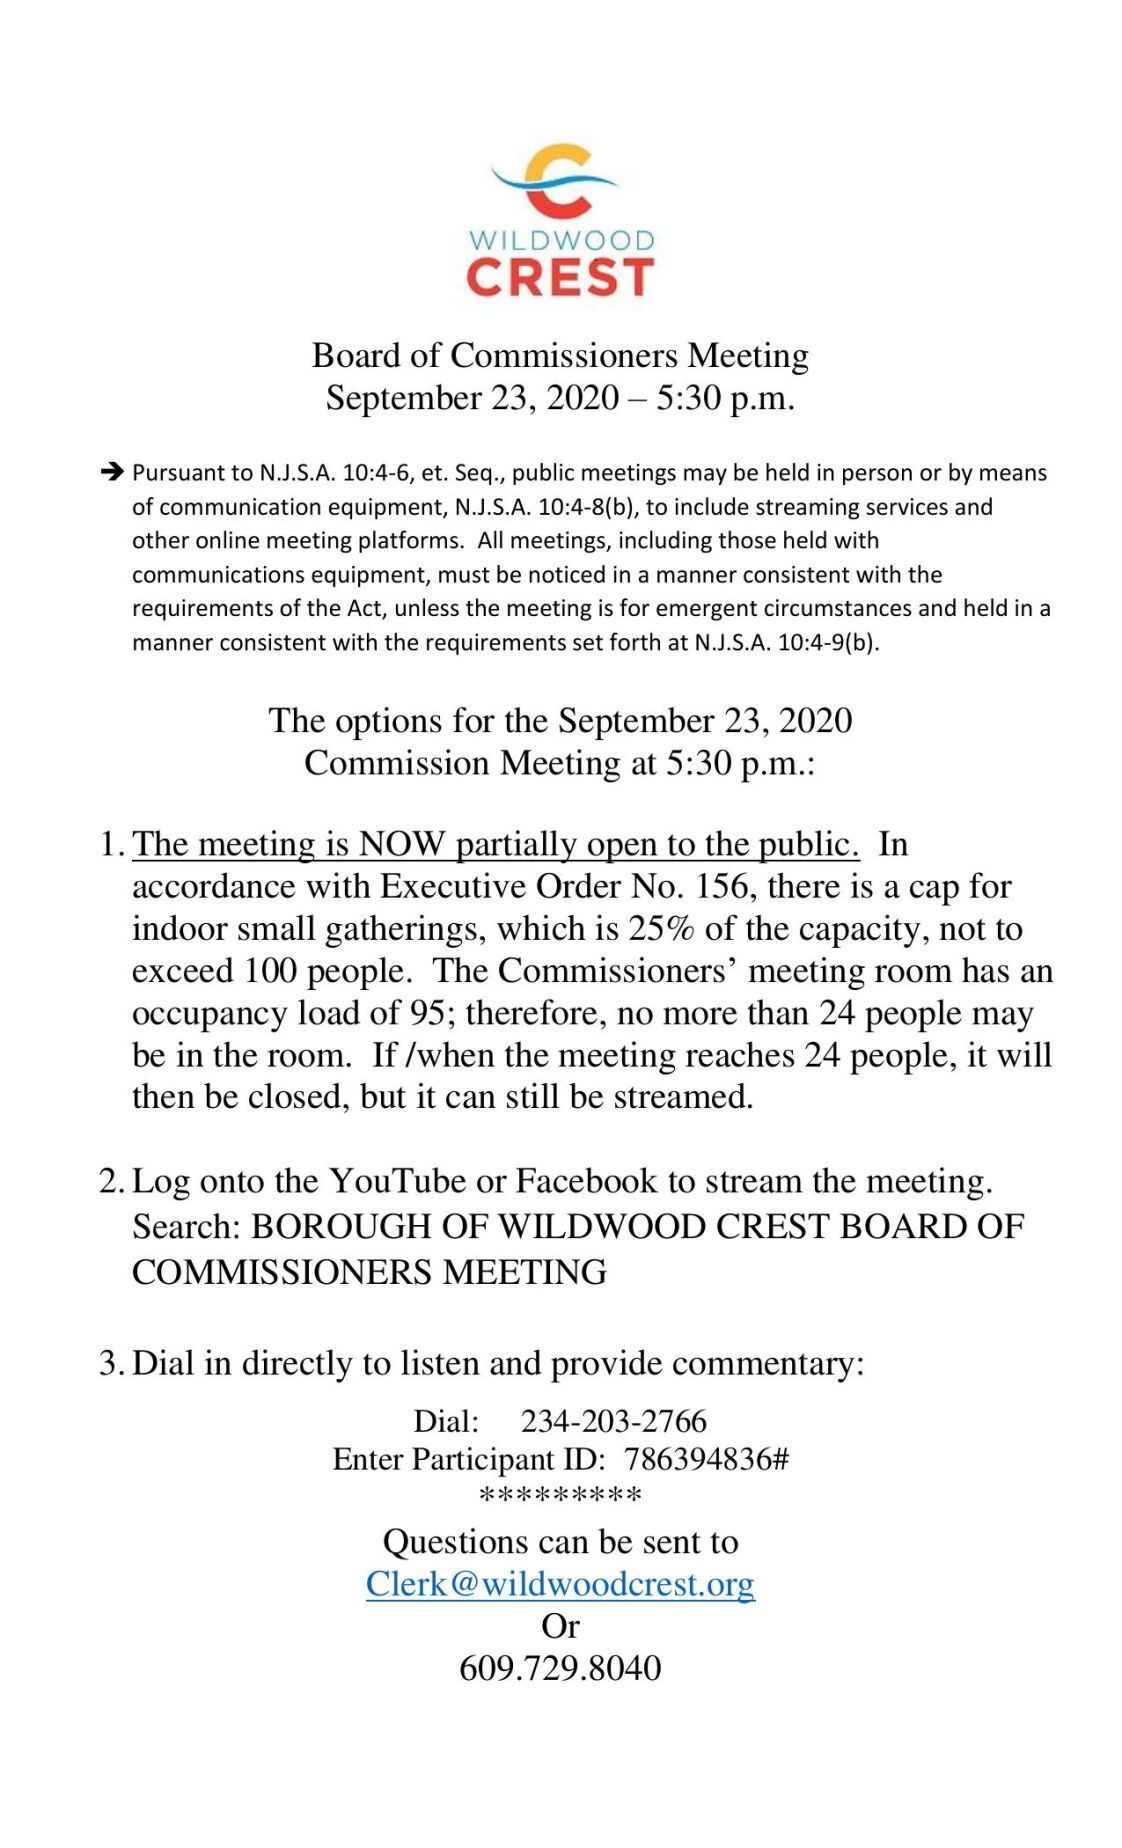 Wildwood Crest Commissioners Meeting Agenda Sept. 23, 2020